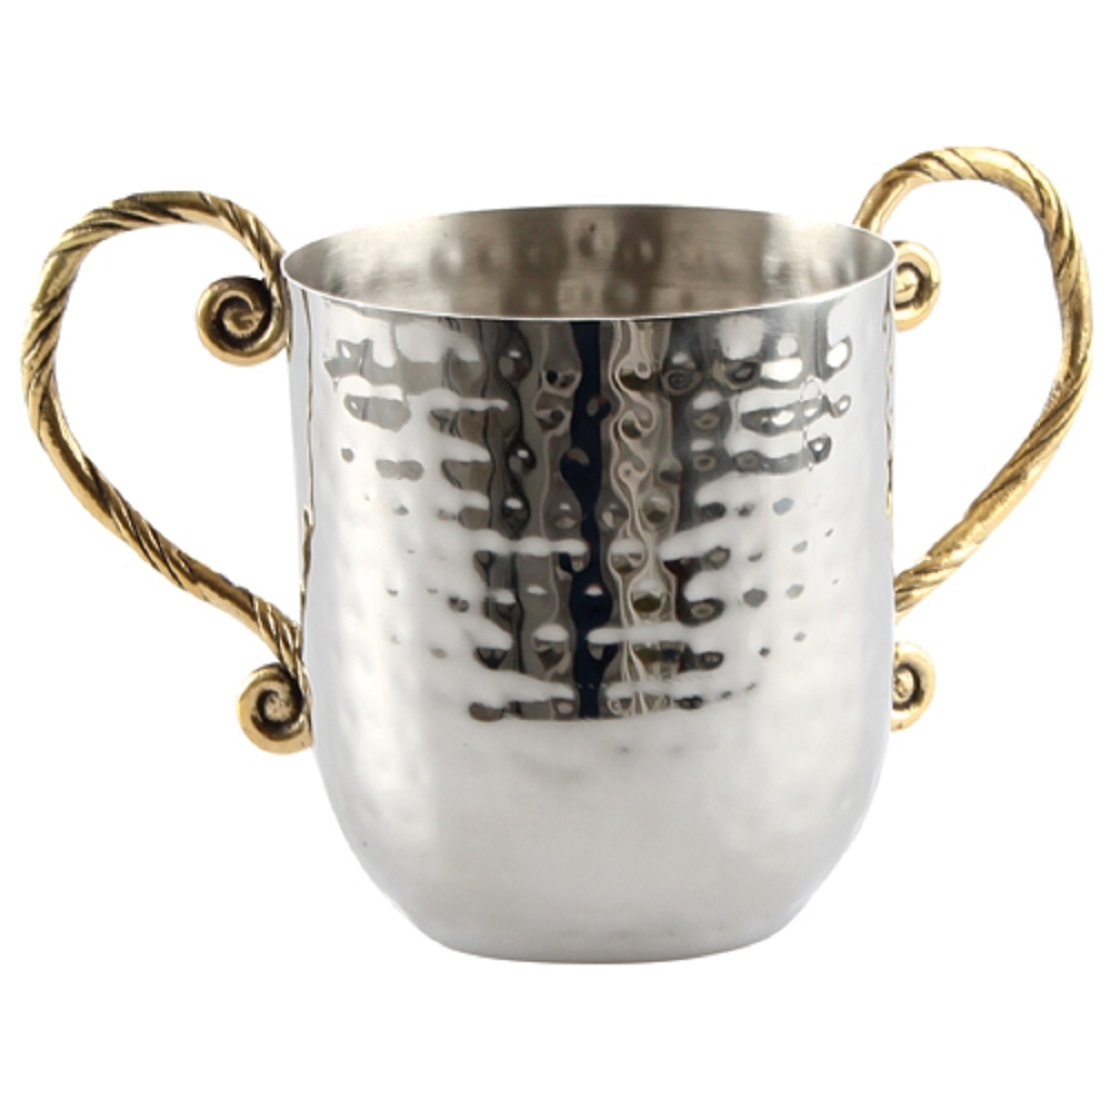 Judaica Hand Wash Cup Last Water Stainless Steel Silver Gold Handles Hammered